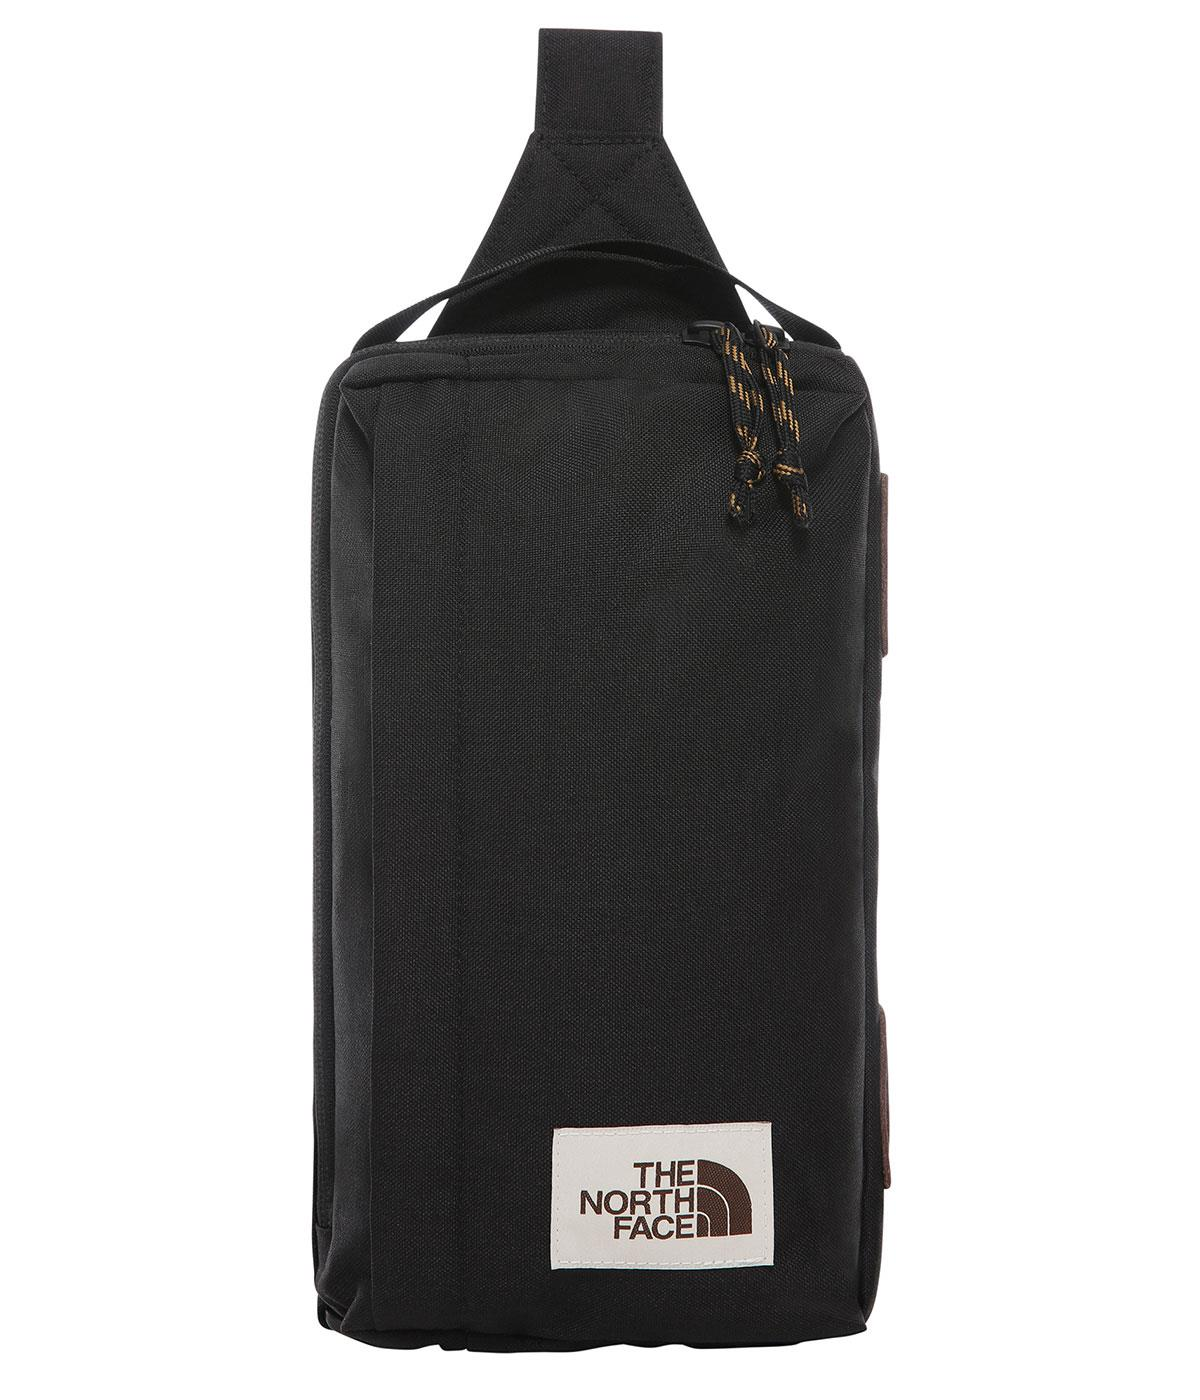 The Northface FIELD BAG NF0A3KZSKS71